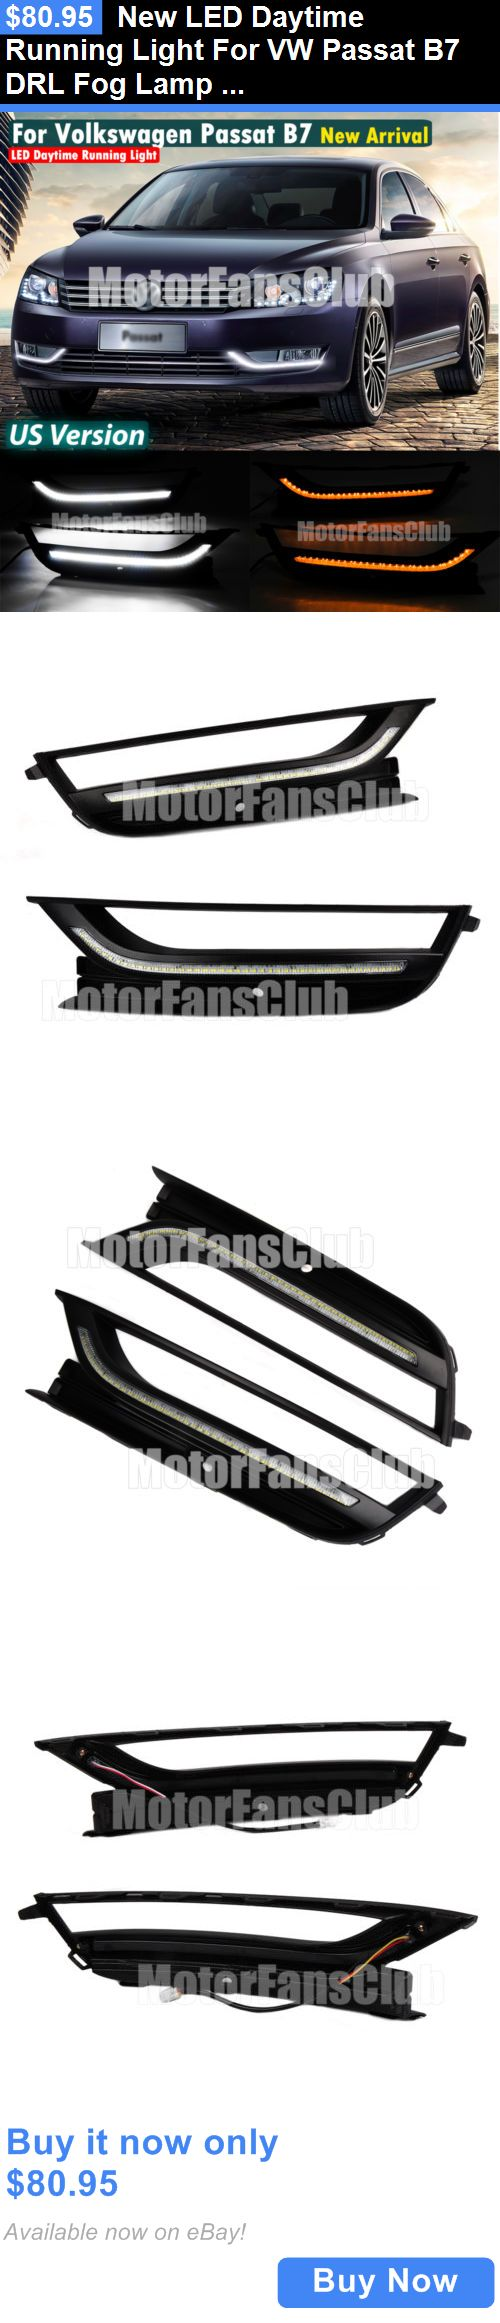 Motors Parts And Accessories: New Led Daytime Running Light For Vw Passat B7 Drl Fog Lamp 2011 12 2013 Signal BUY IT NOW ONLY: $80.95